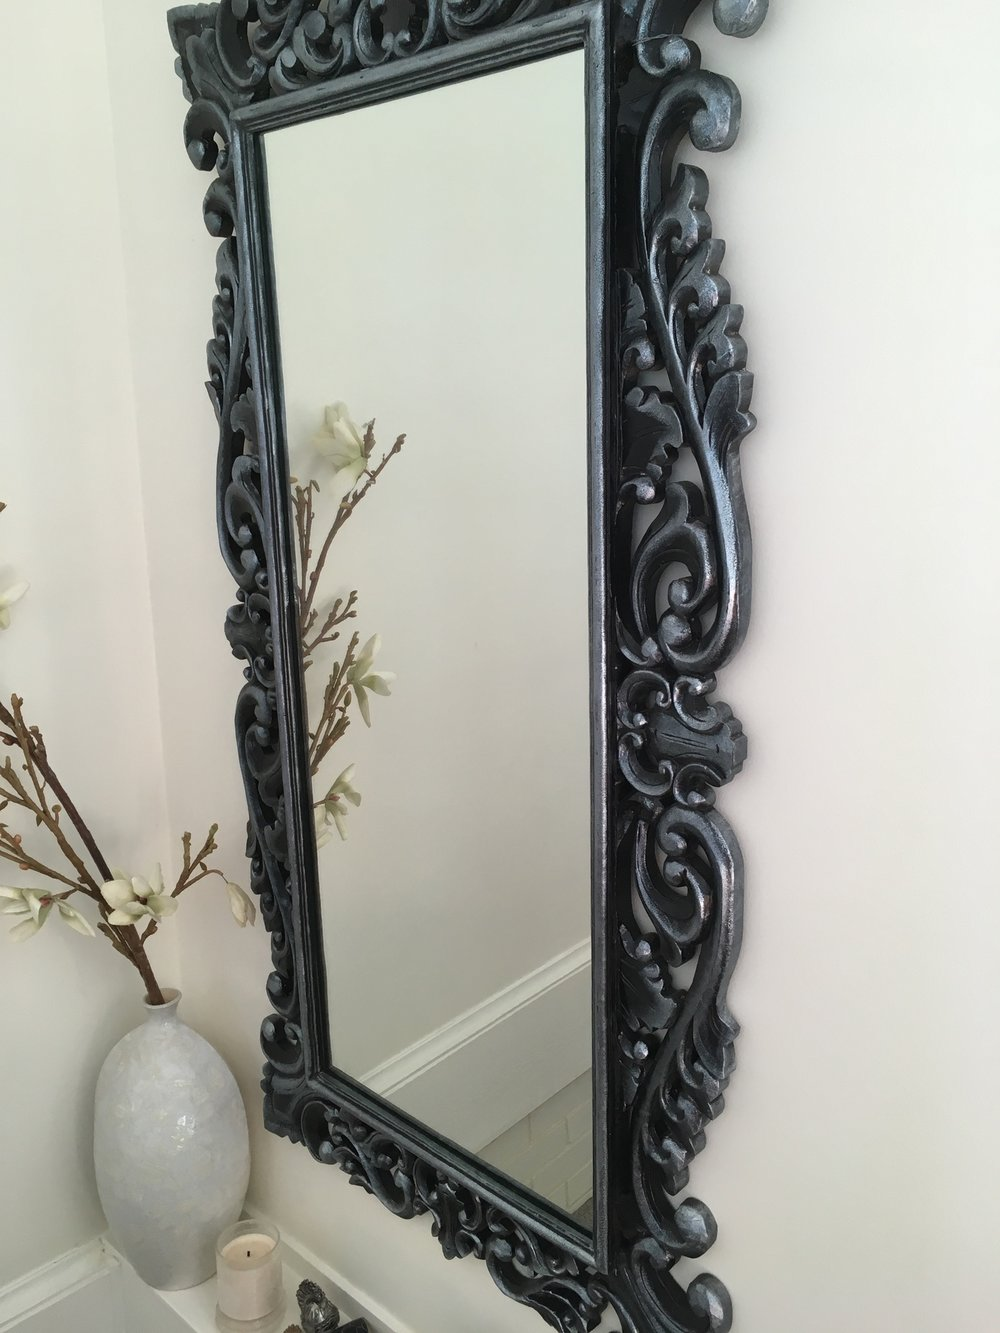 Large mirror to write message on